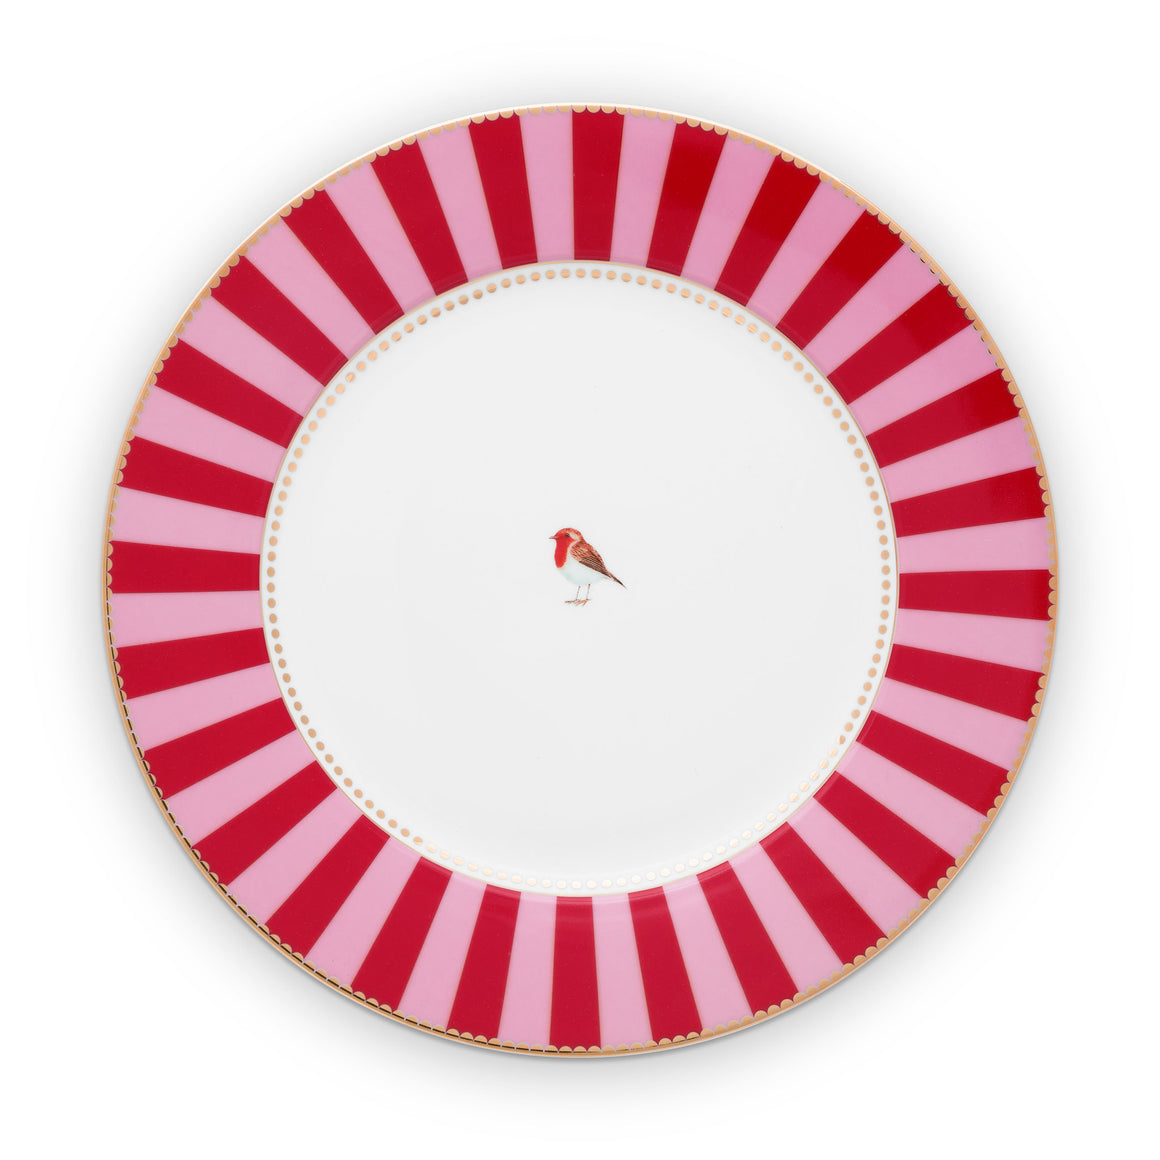 Love Bird Plate 26,5 Cm, ​​Red / Pink